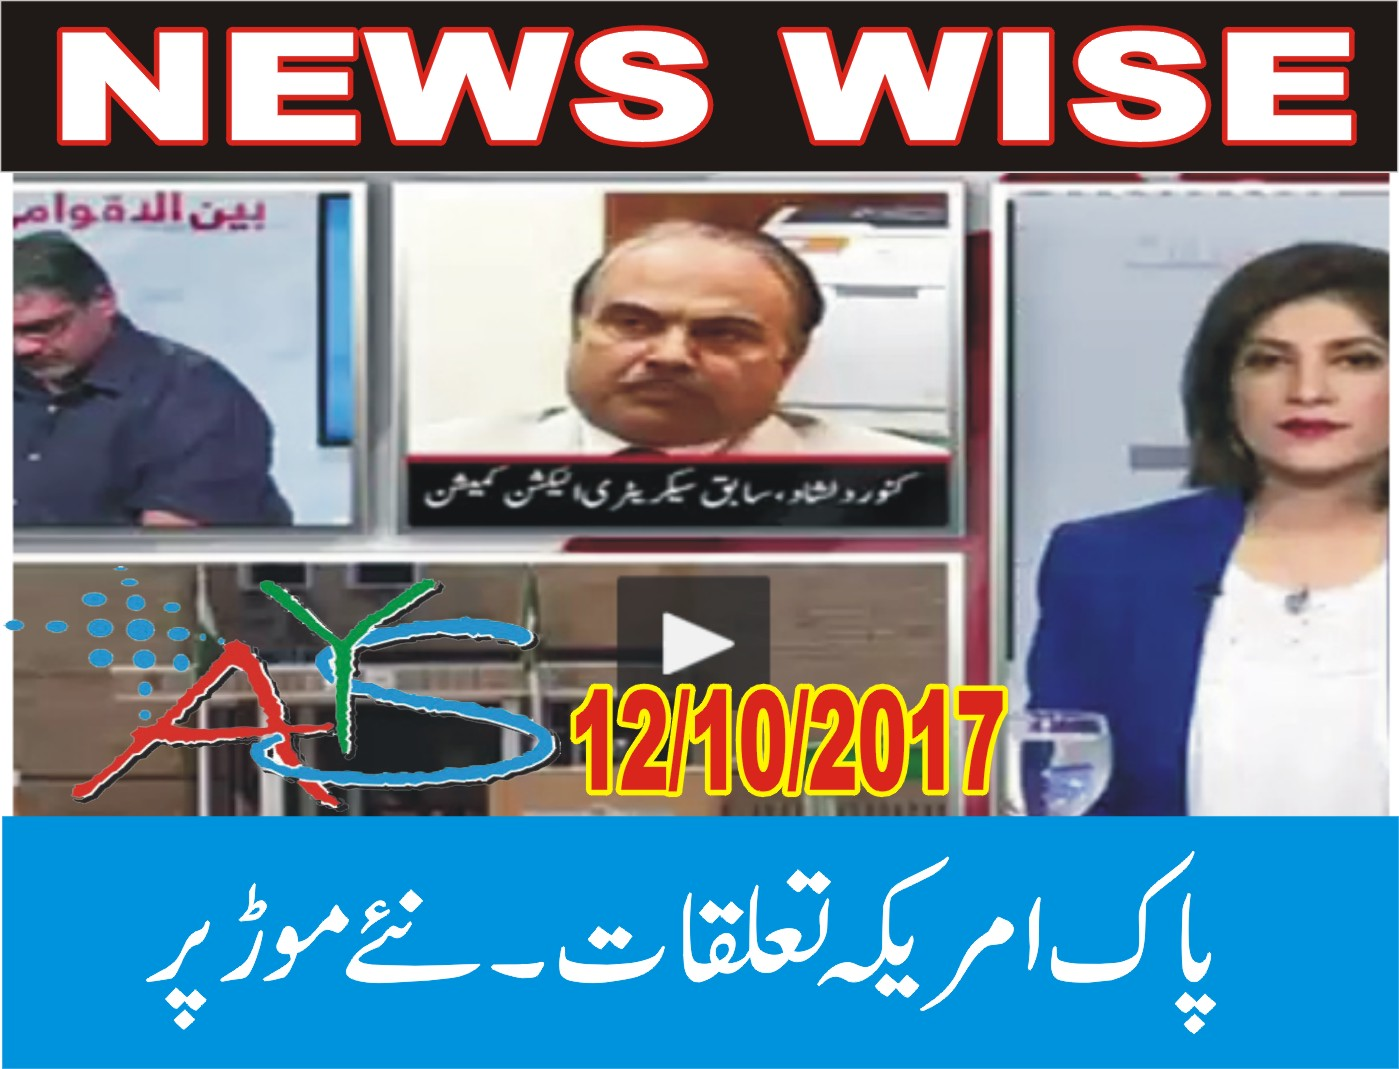 13 Oct 2017 - Shareef Khandan Per Fard-e-Jurm 19 Oct Tak Mu..